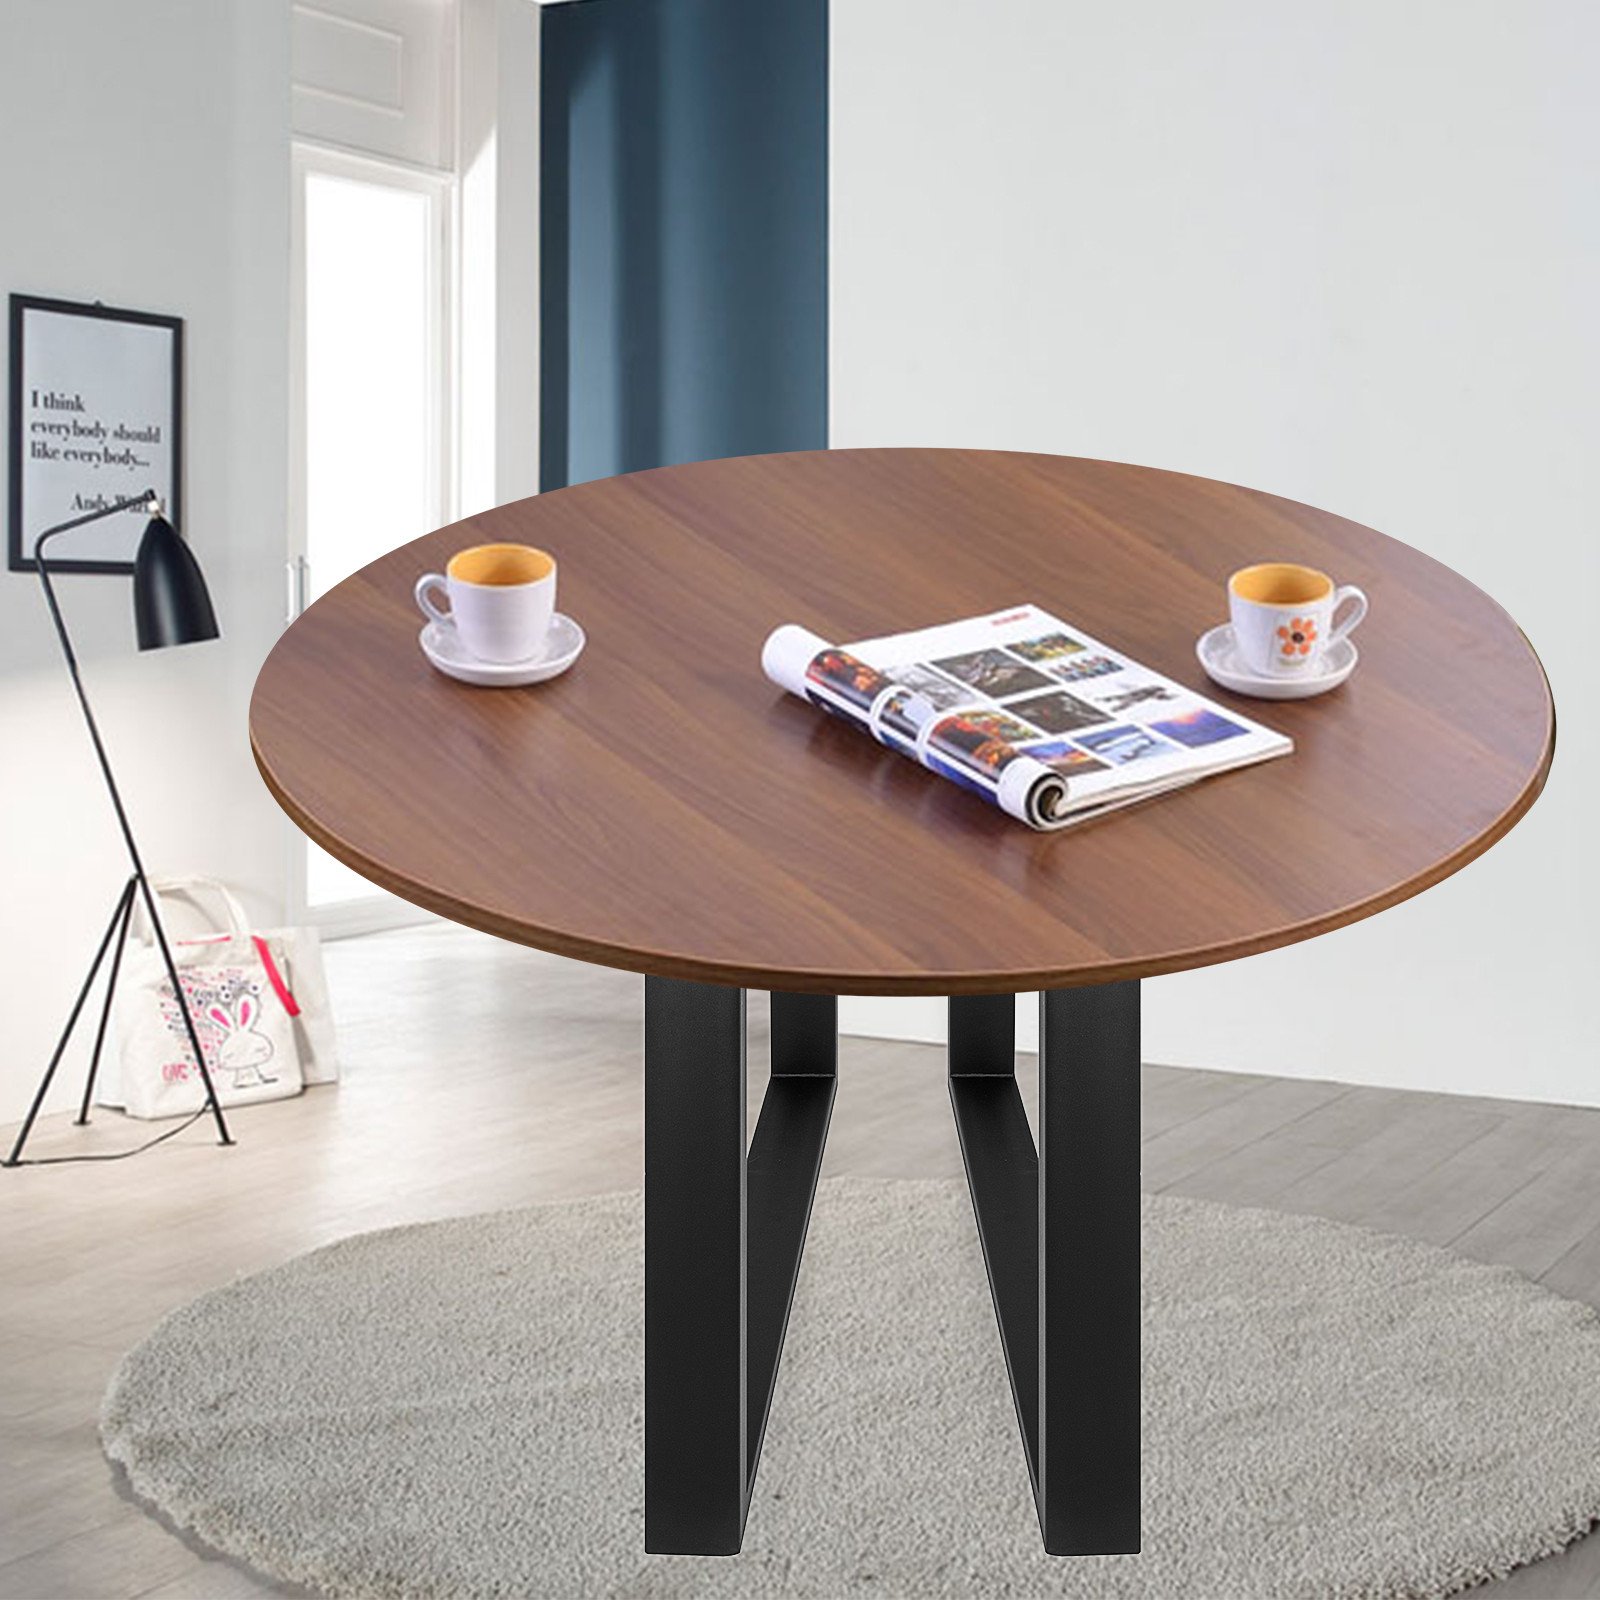 2X-Table-Legs-Black-Dining-Table-Leg-Heavy-Duty-Computer-Desk-Legs-Rectangle thumbnail 94